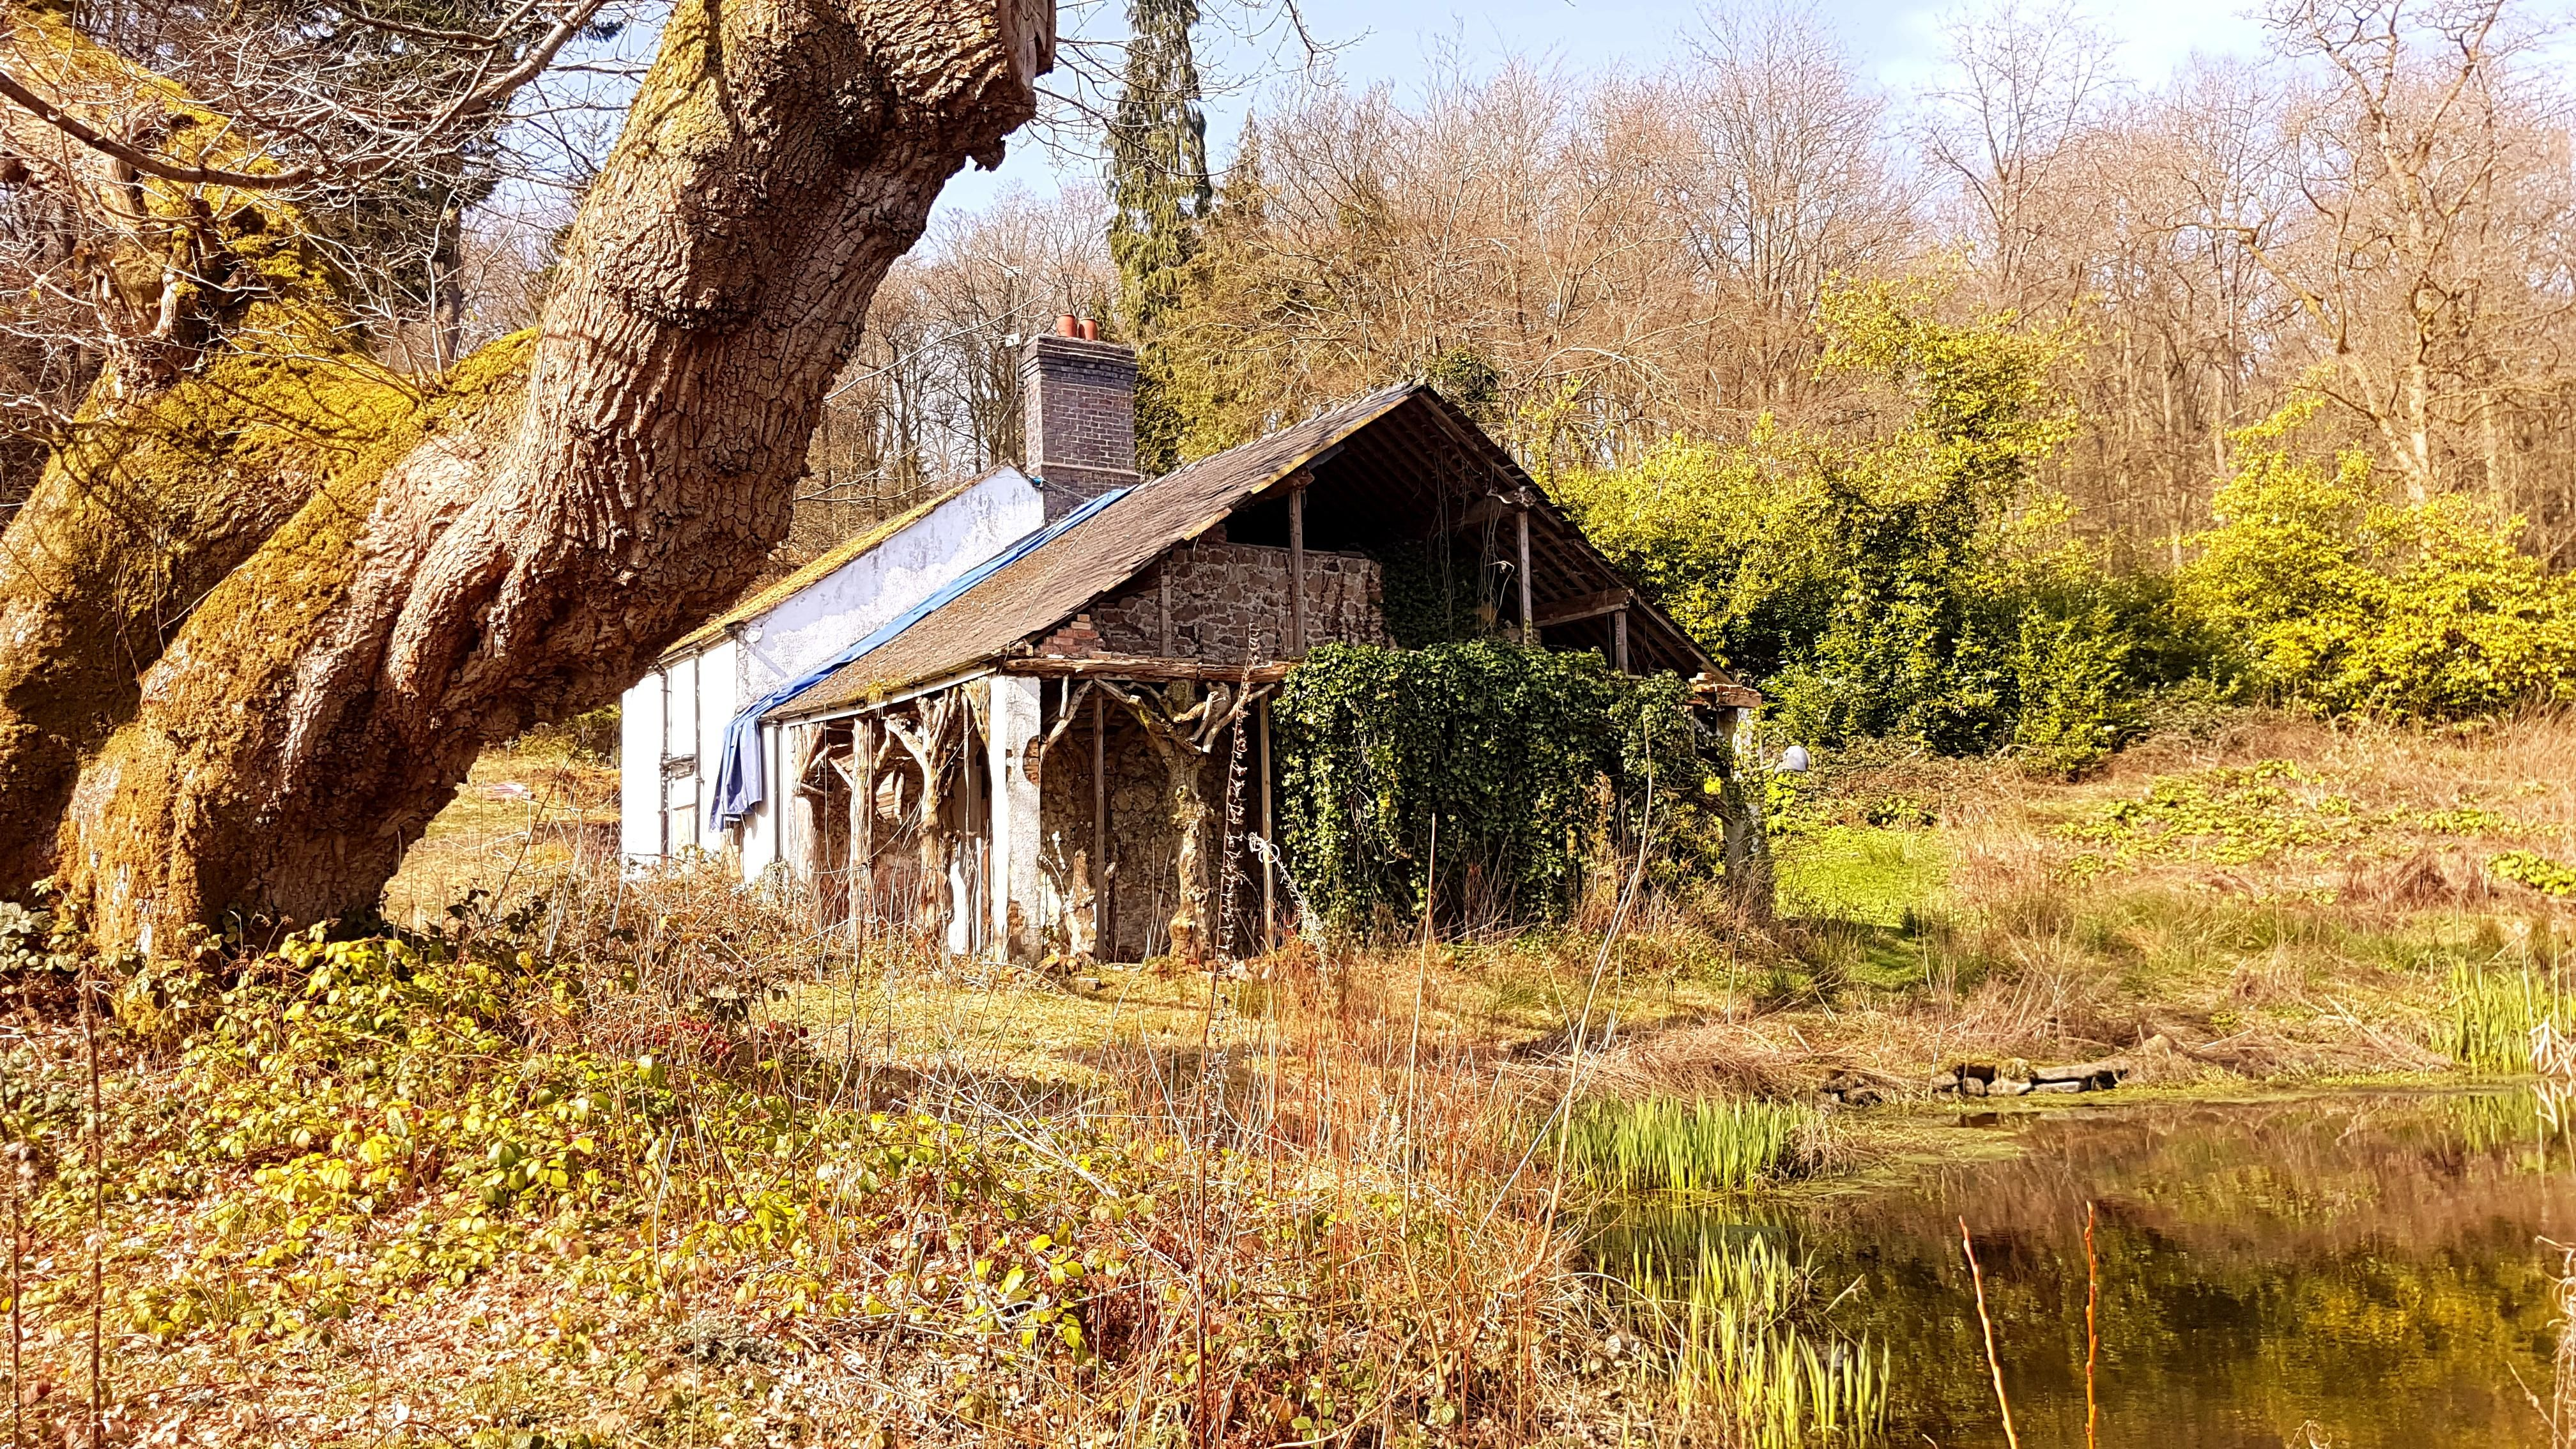 Abandoned Swiss Cottage Oswestry Shropshire In 2020 Swiss Cottage Oswestry Abandoned